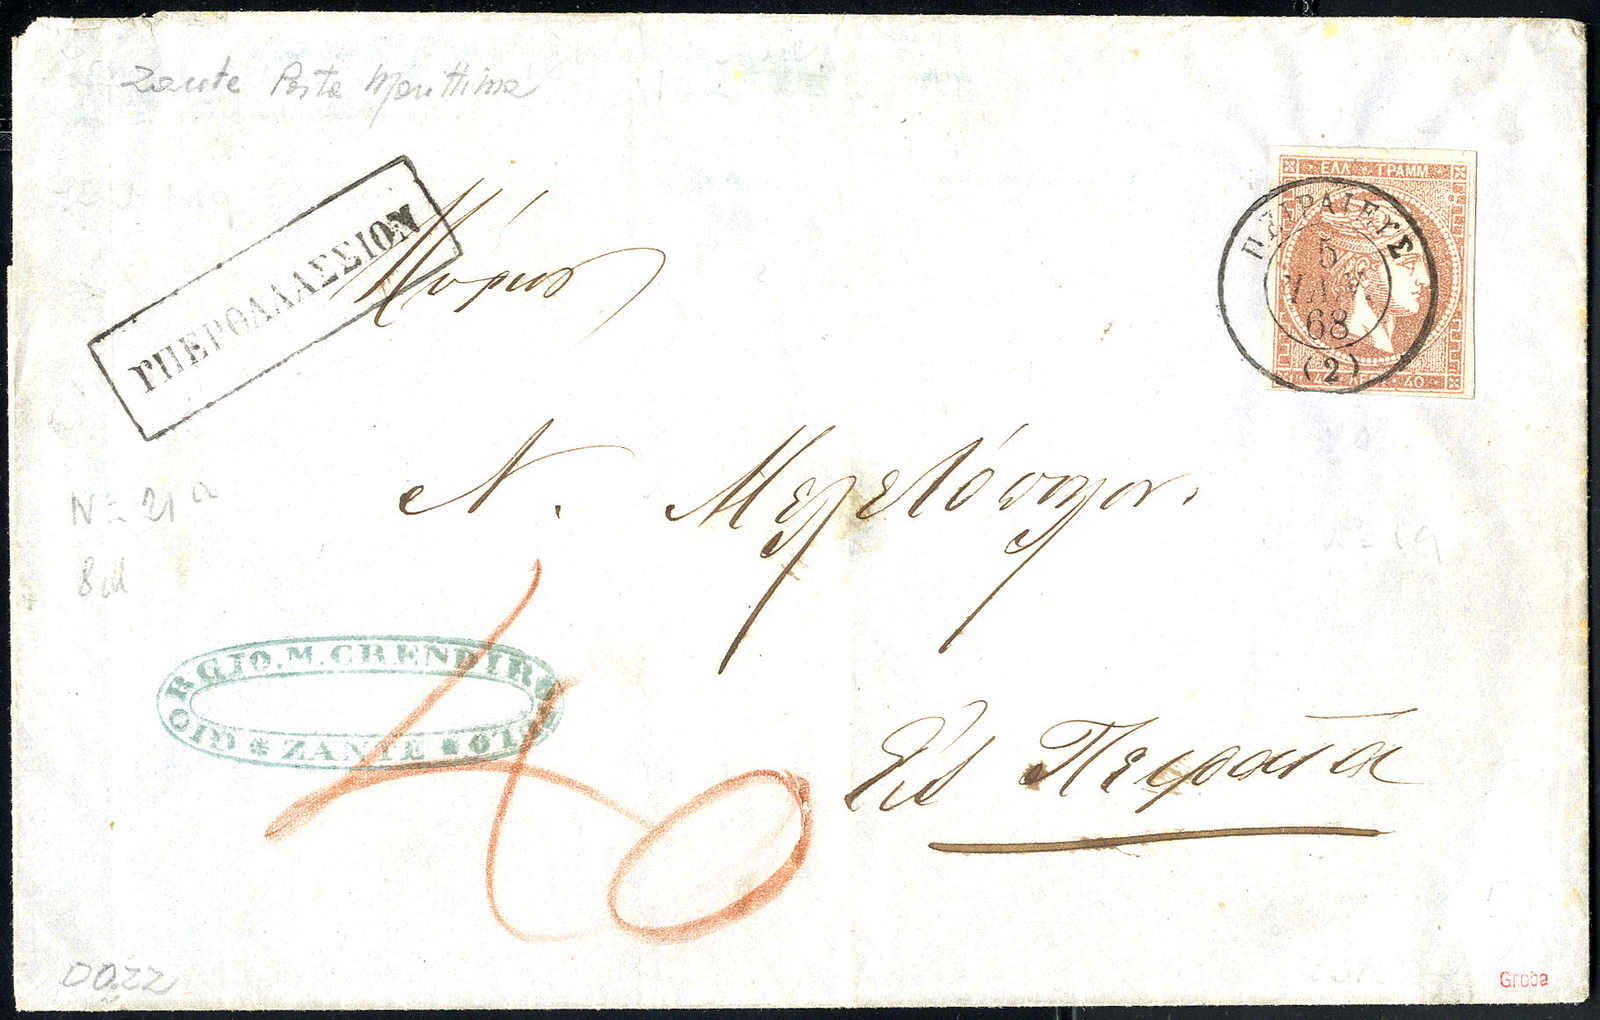 Lot 3115 - europe Greece -  Viennafil Auktionen 63rd LIVE AUCTION